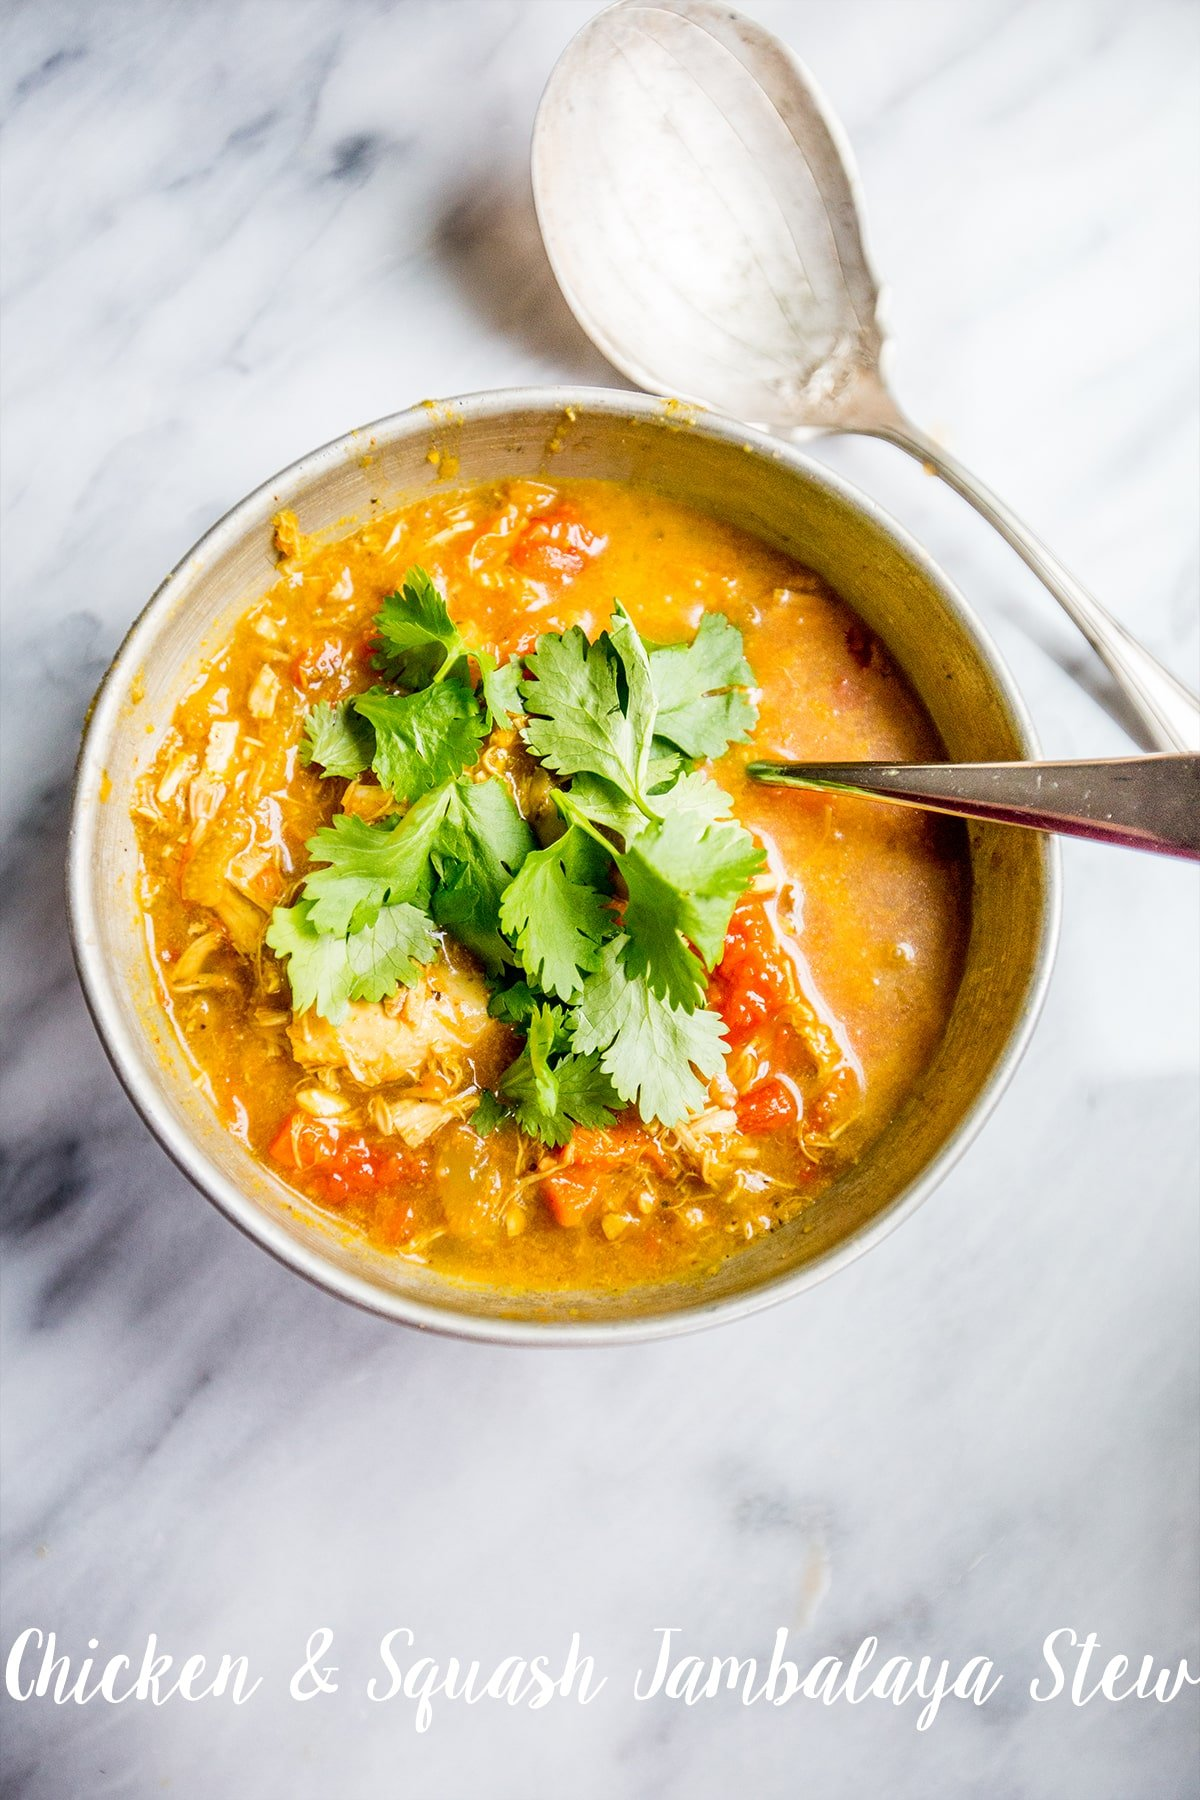 Chicken and squash jambalaya stew- delicious, comforting dinner in a flash!